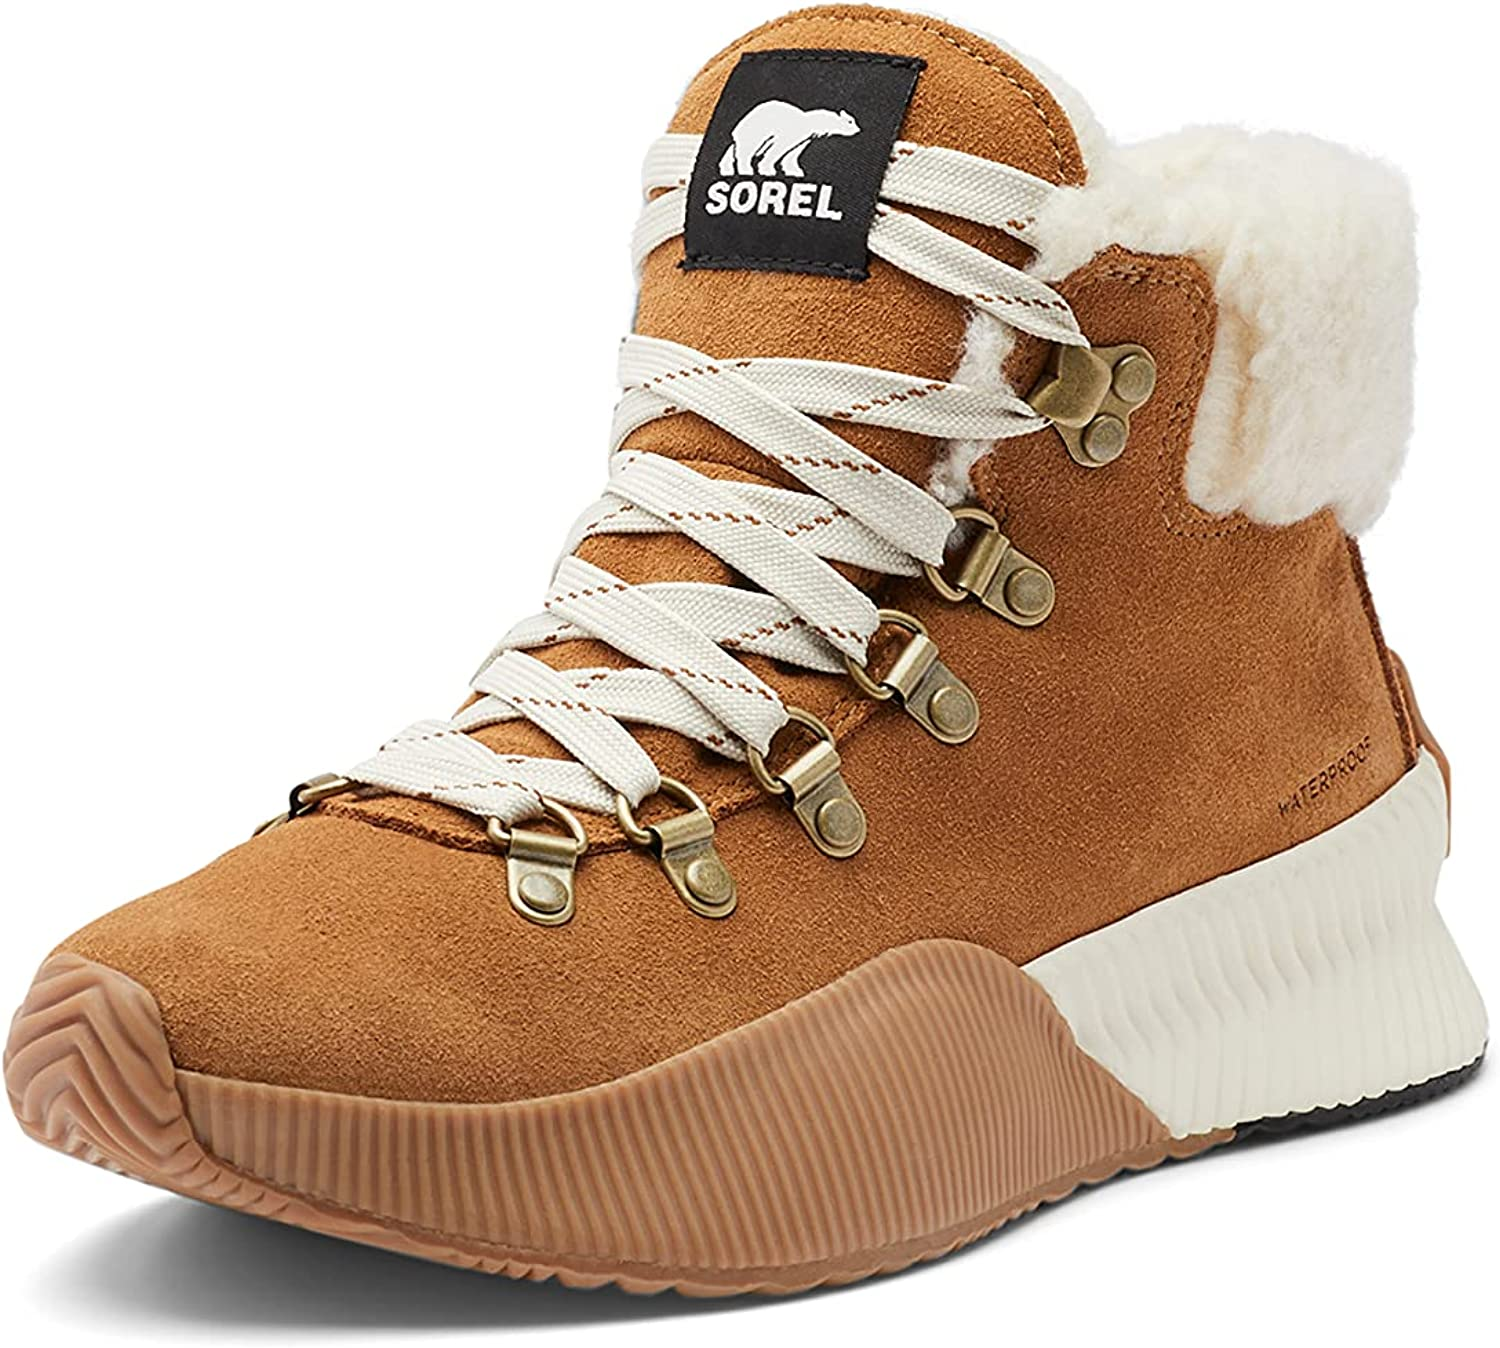 SOREL Women's Out 'N About III Conquest Boot — Waterproof Suede Winter Boots